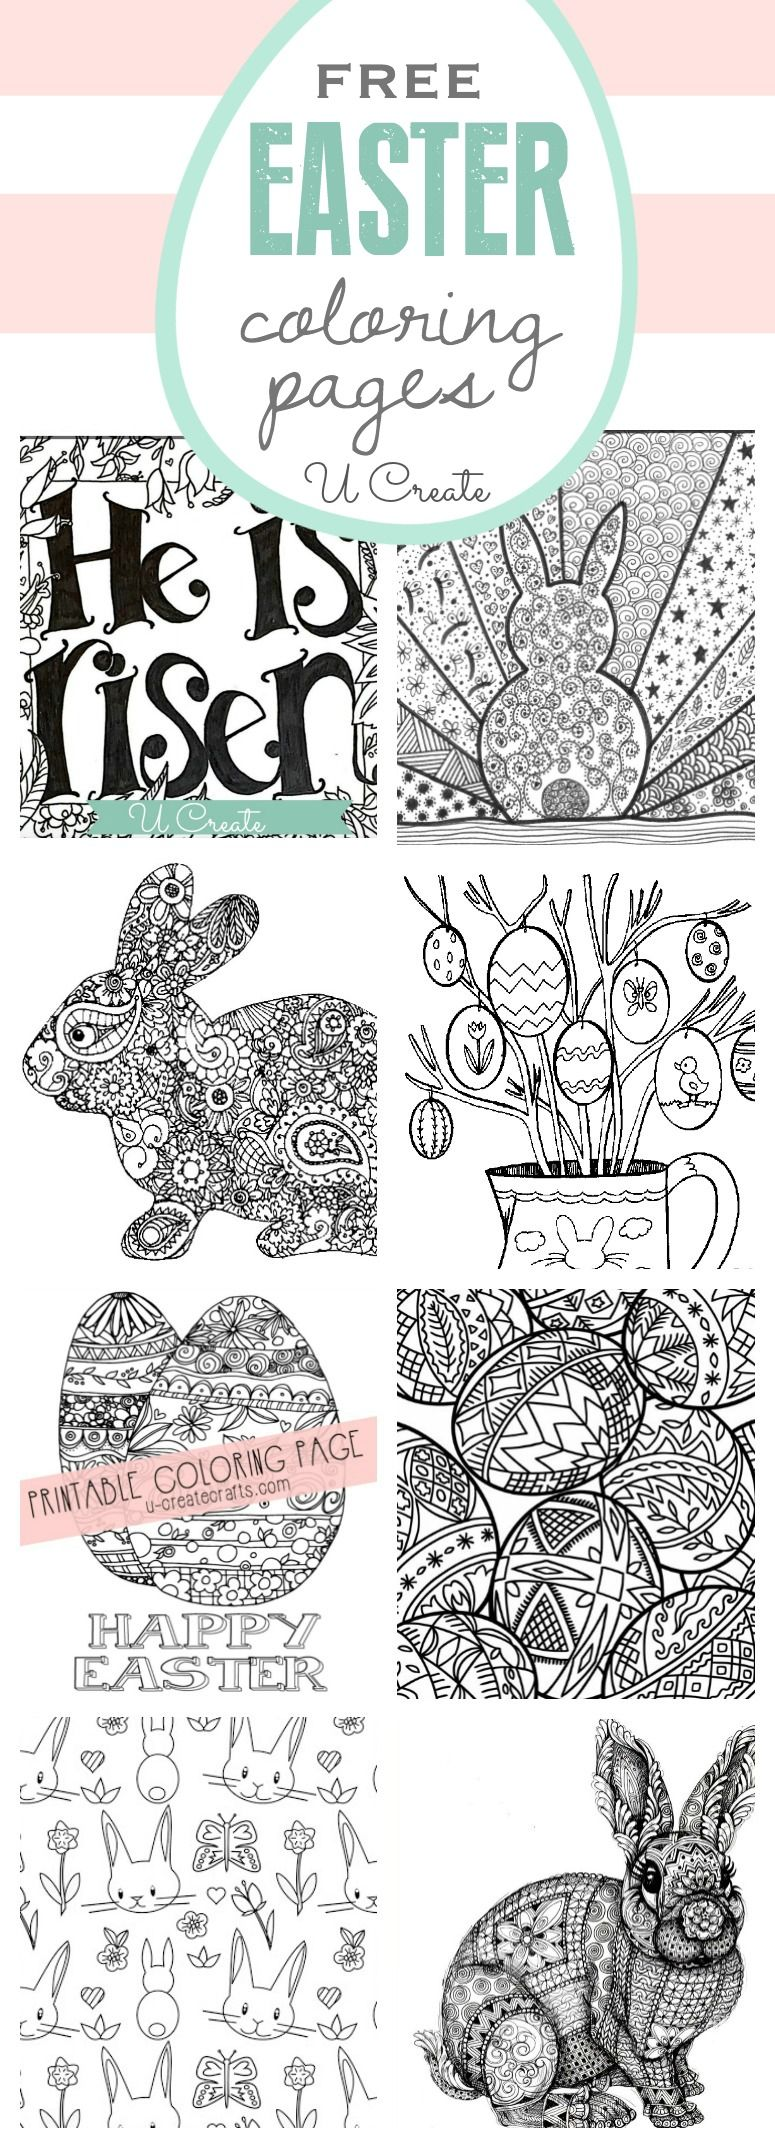 Free easter coloring pages ucreatecrafts easter things